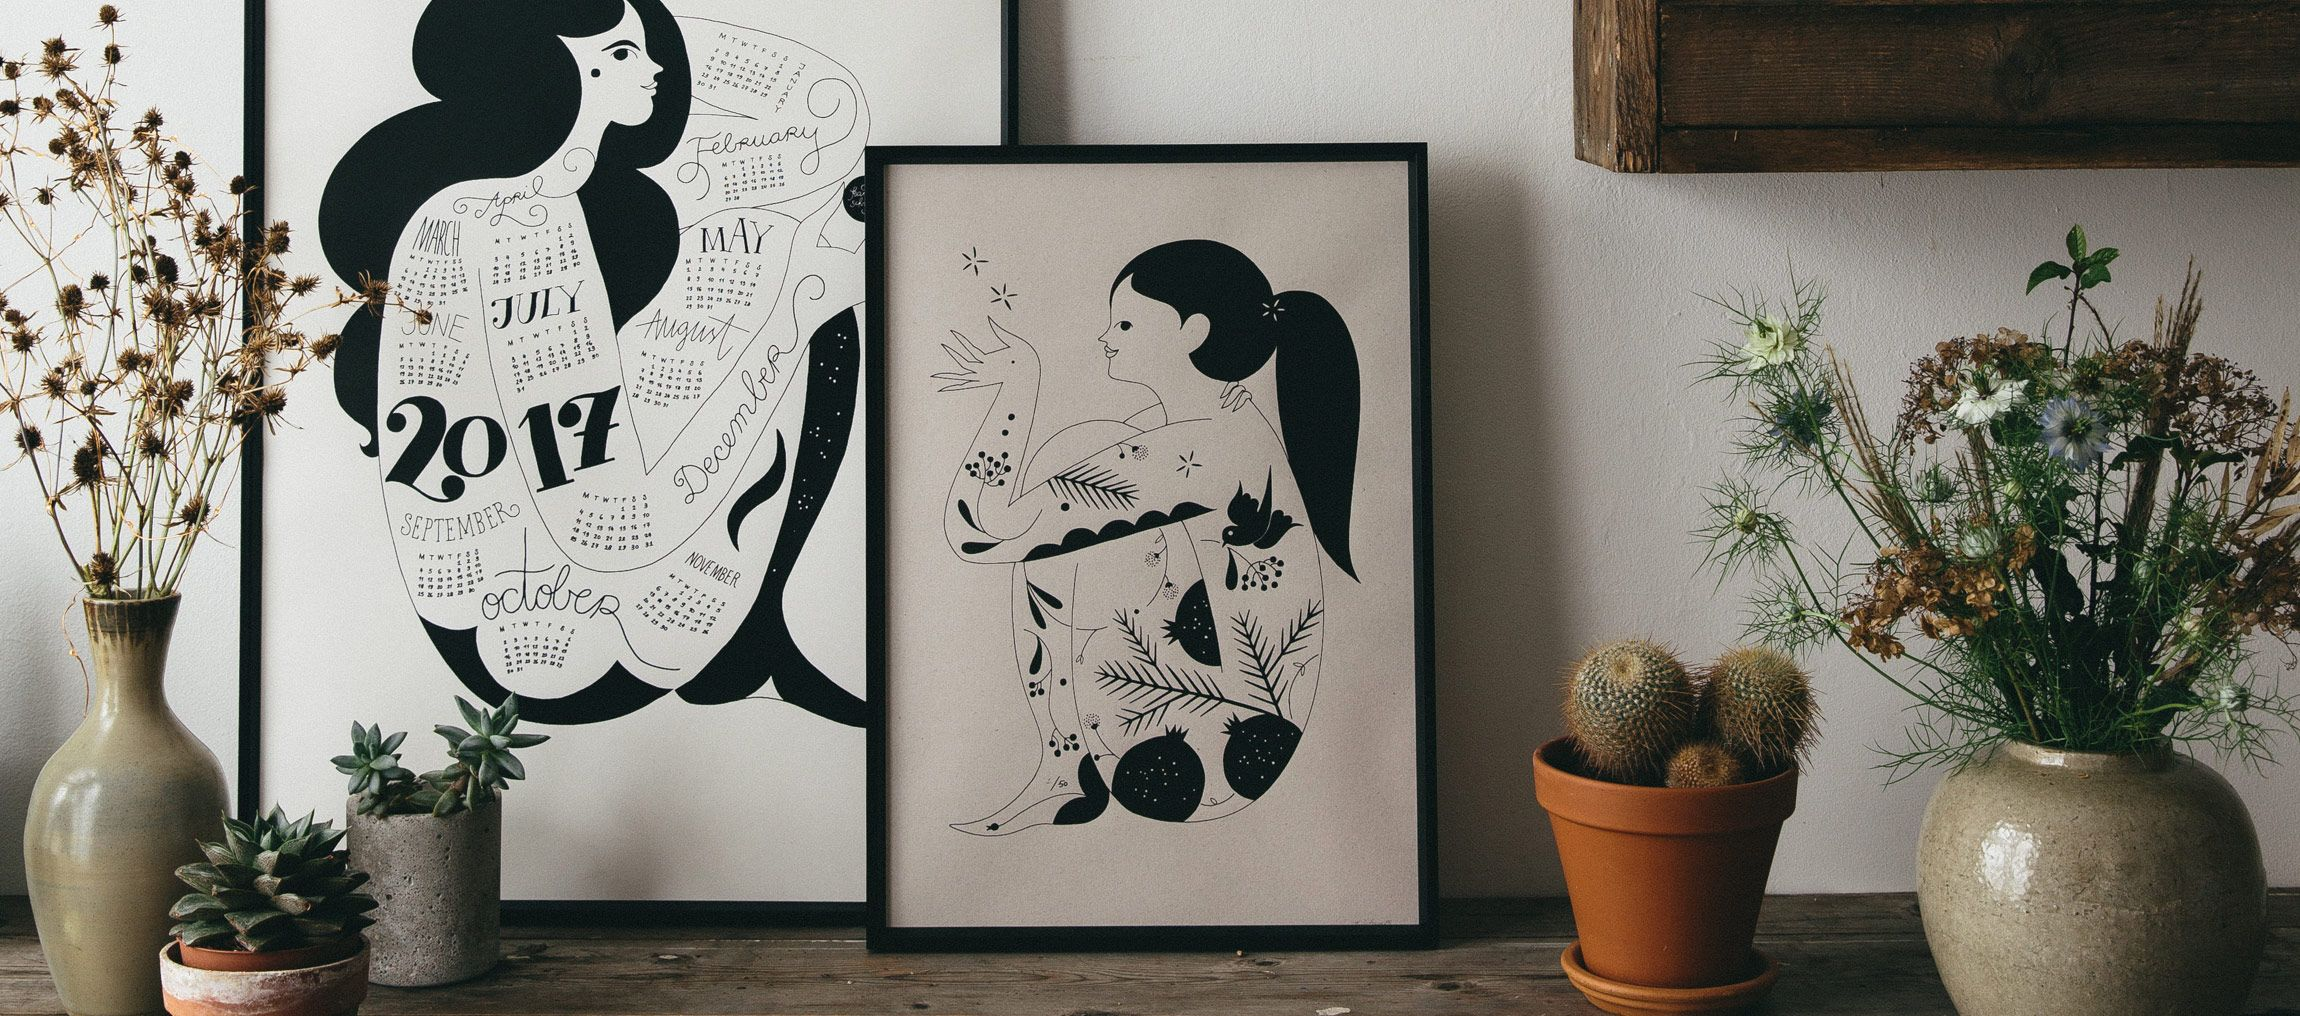 limited edition letterpress print in the uk